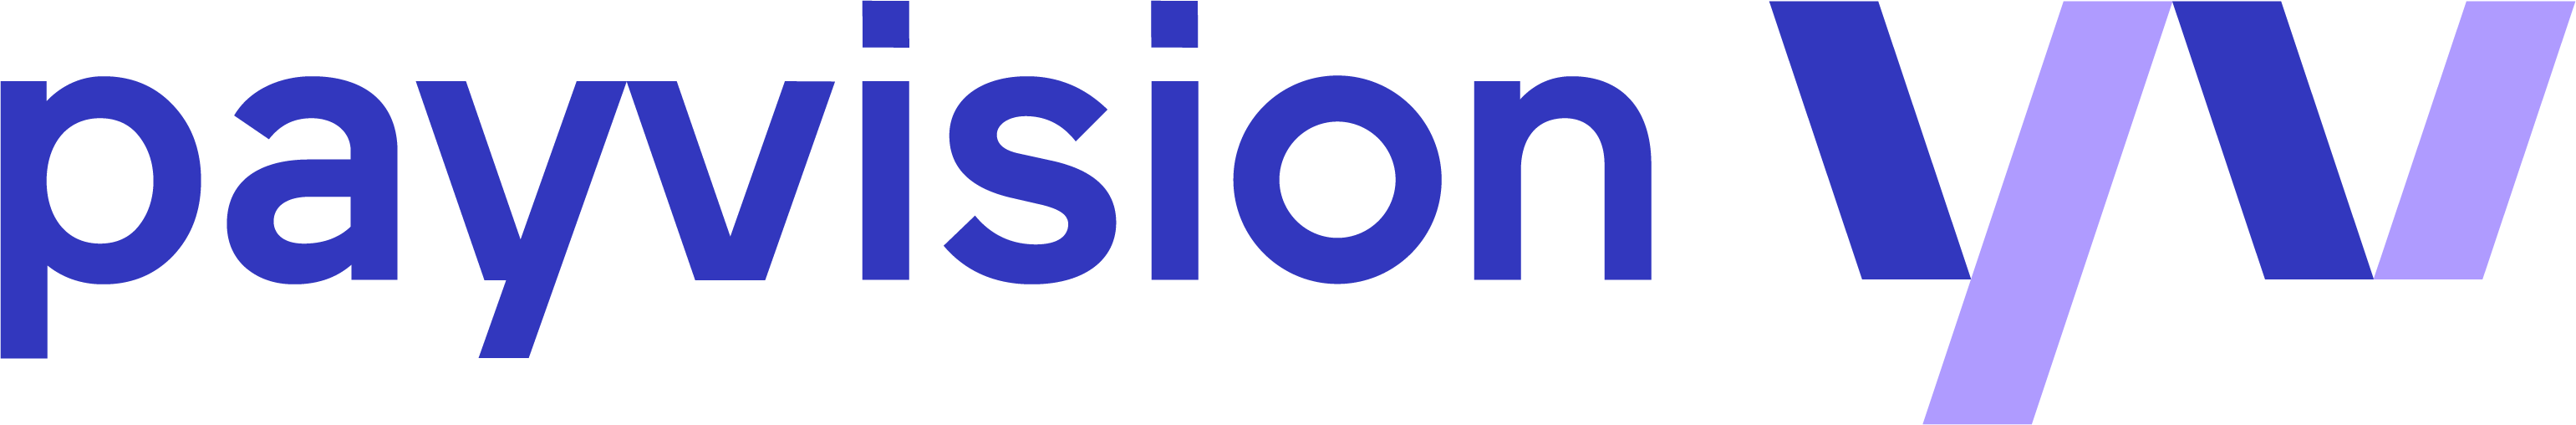 logo of Payvision